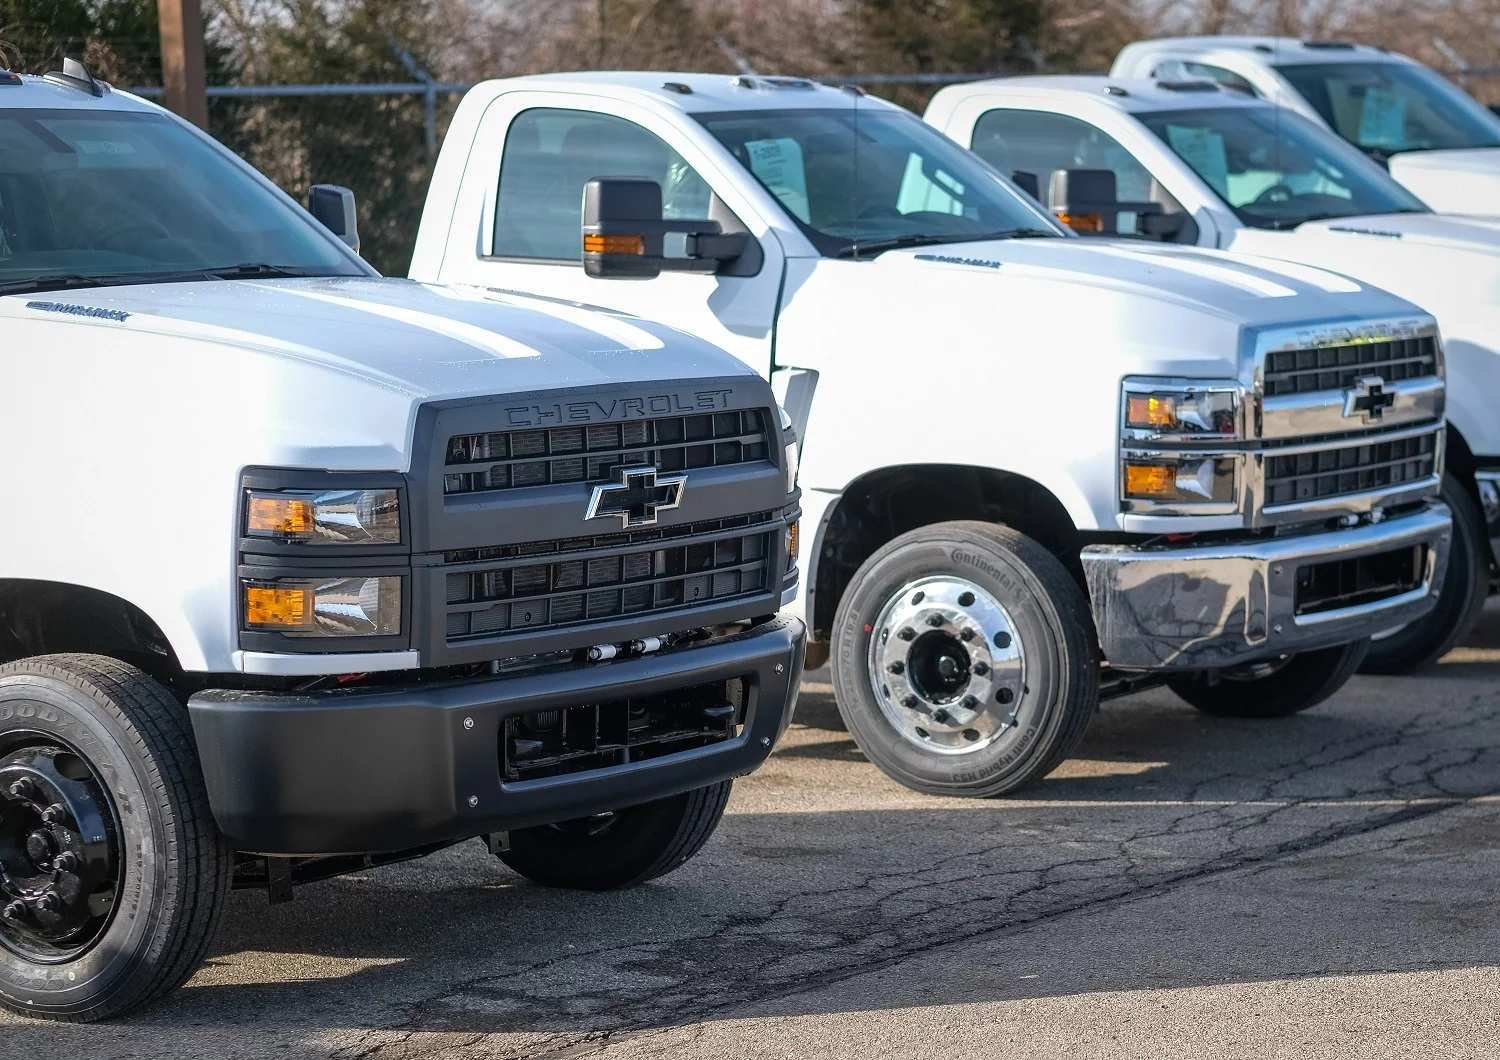 18 Great 2019 Chevrolet Silverado 4500 Hd Pricing by 2019 Chevrolet Silverado 4500 Hd